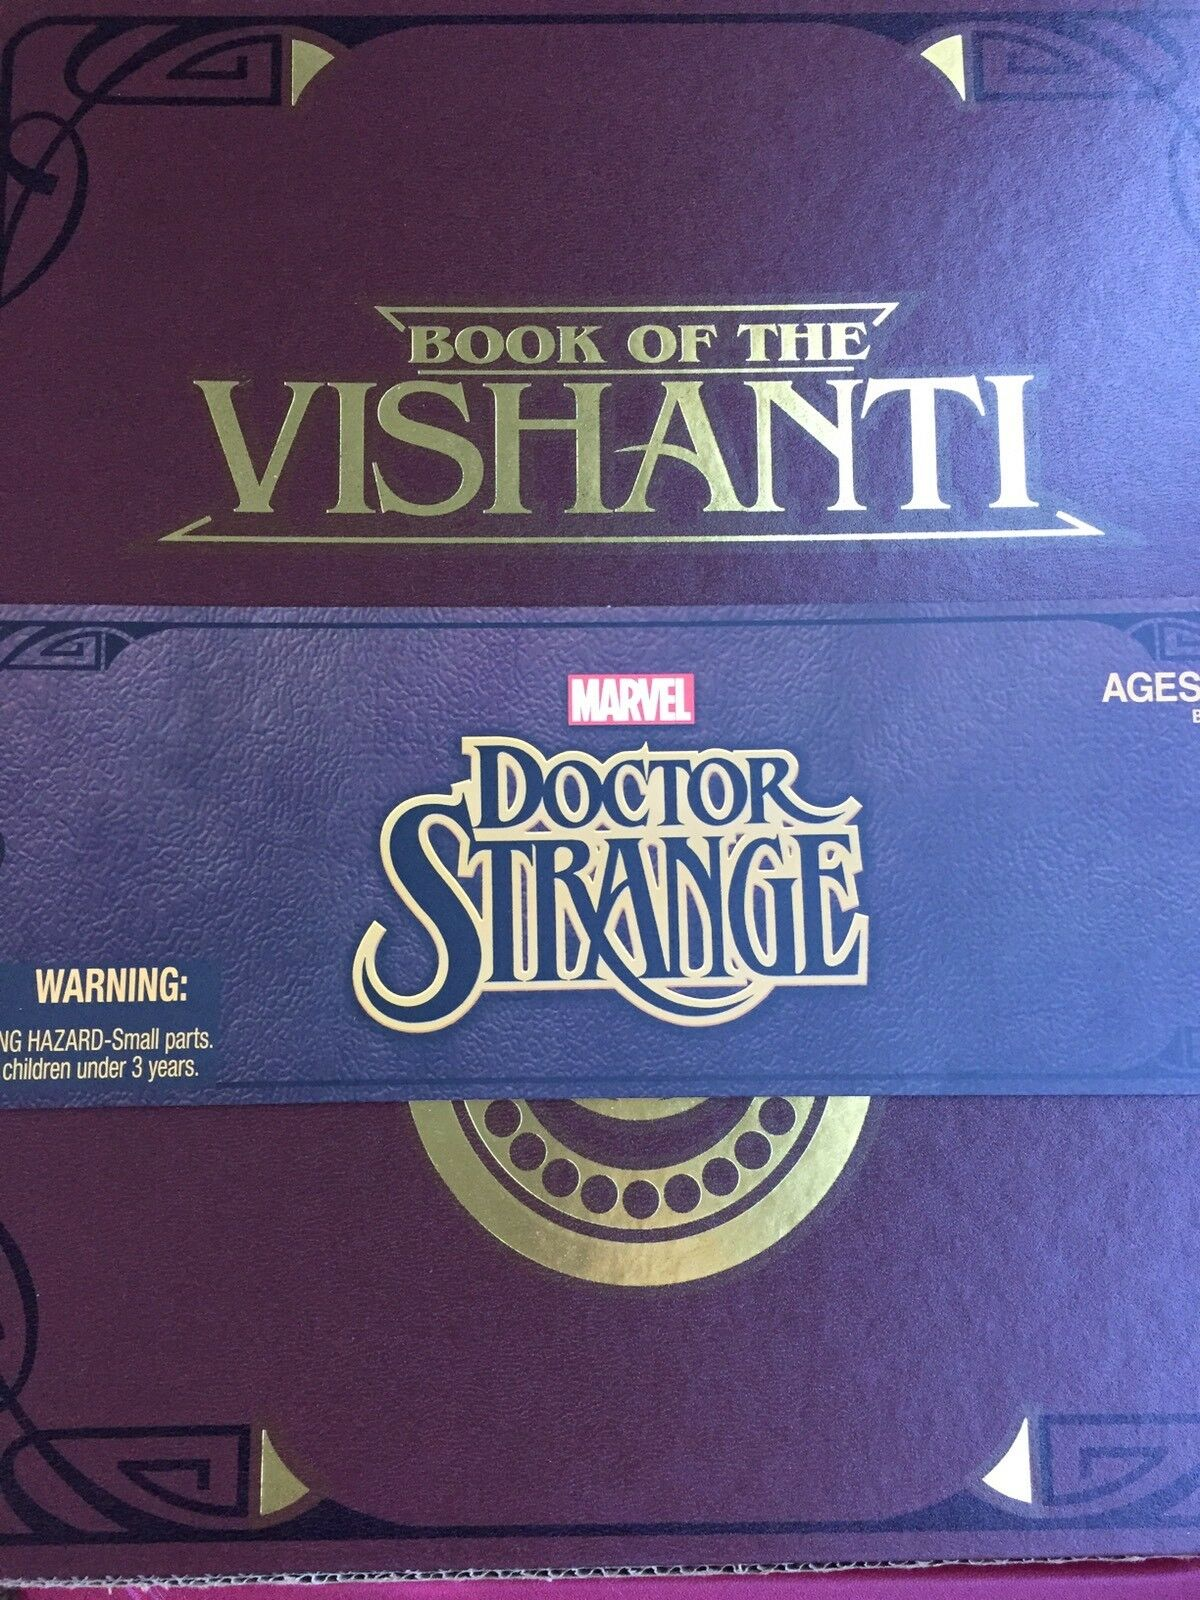 2015 Sdcc ohne Marvel Legends Dr Seltsame Book Of Vishanti Figur Set Hela Magik